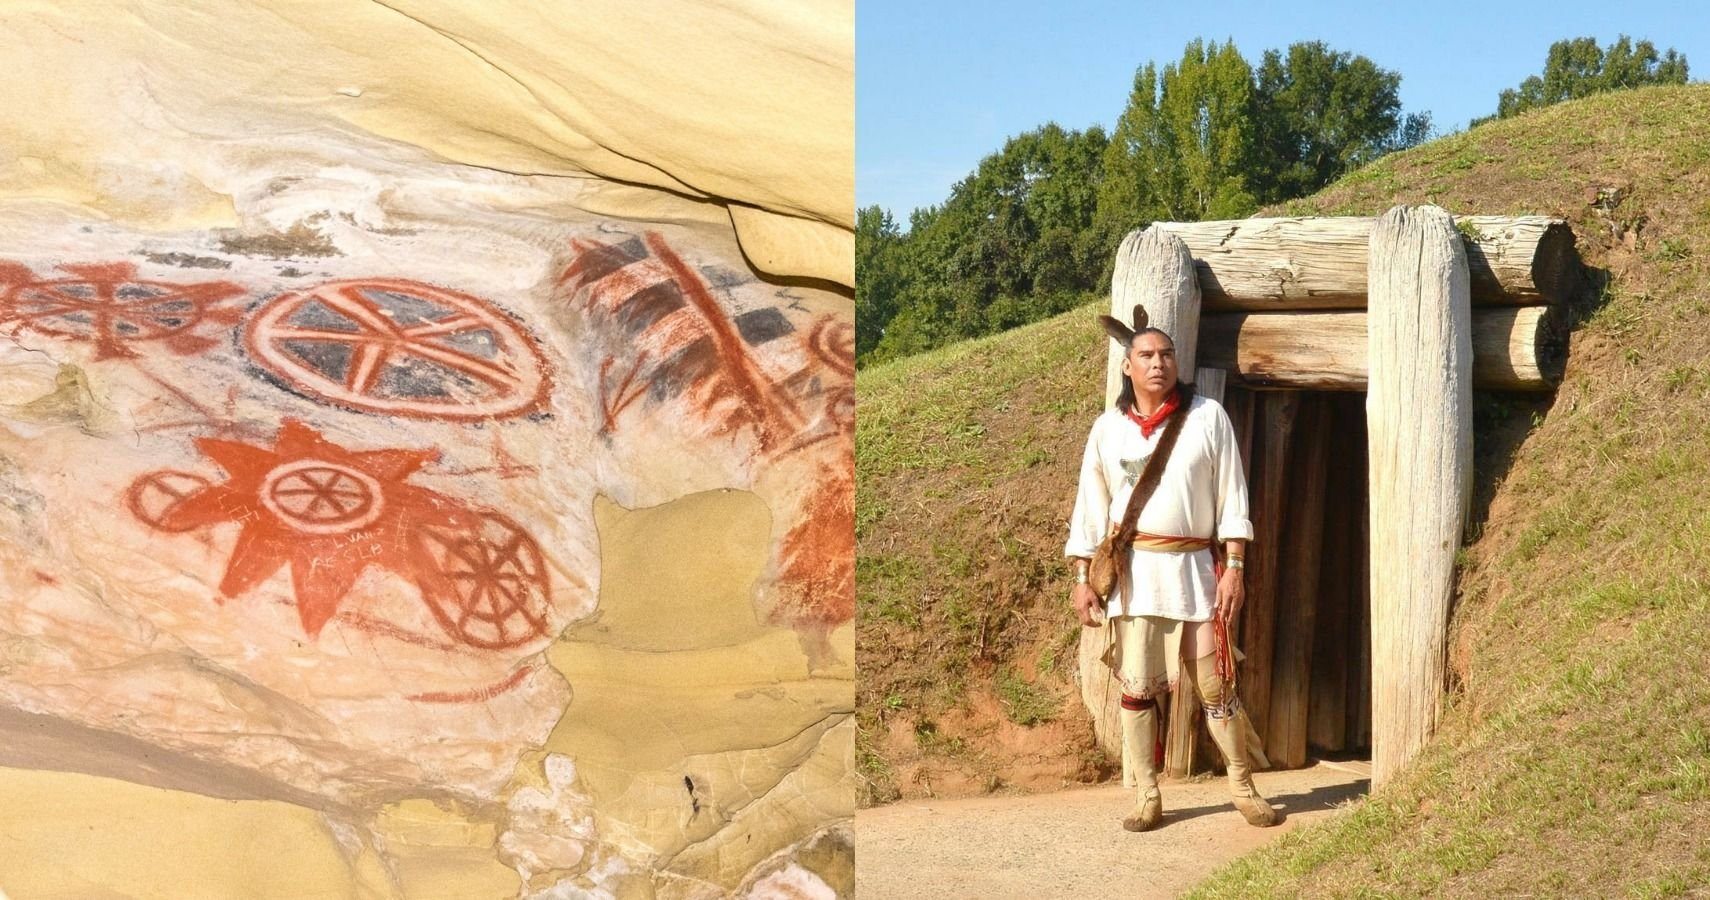 10 Native American Heritage Attractions Everyone Should See